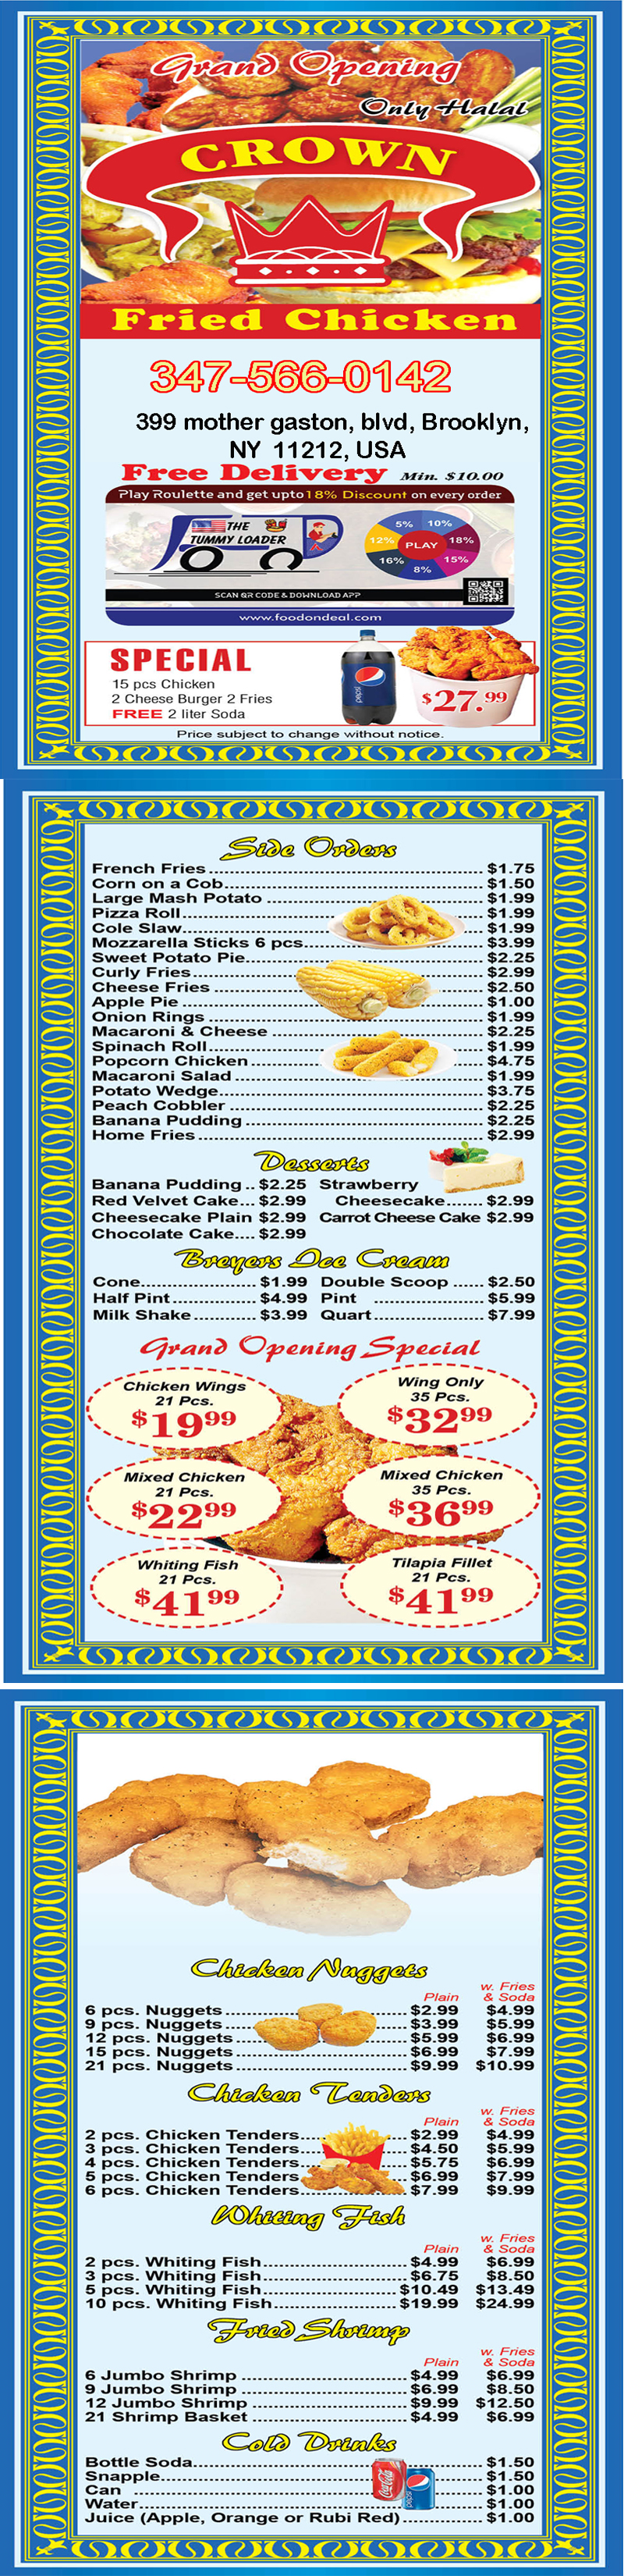 Crown Fried Chicken 399 menu